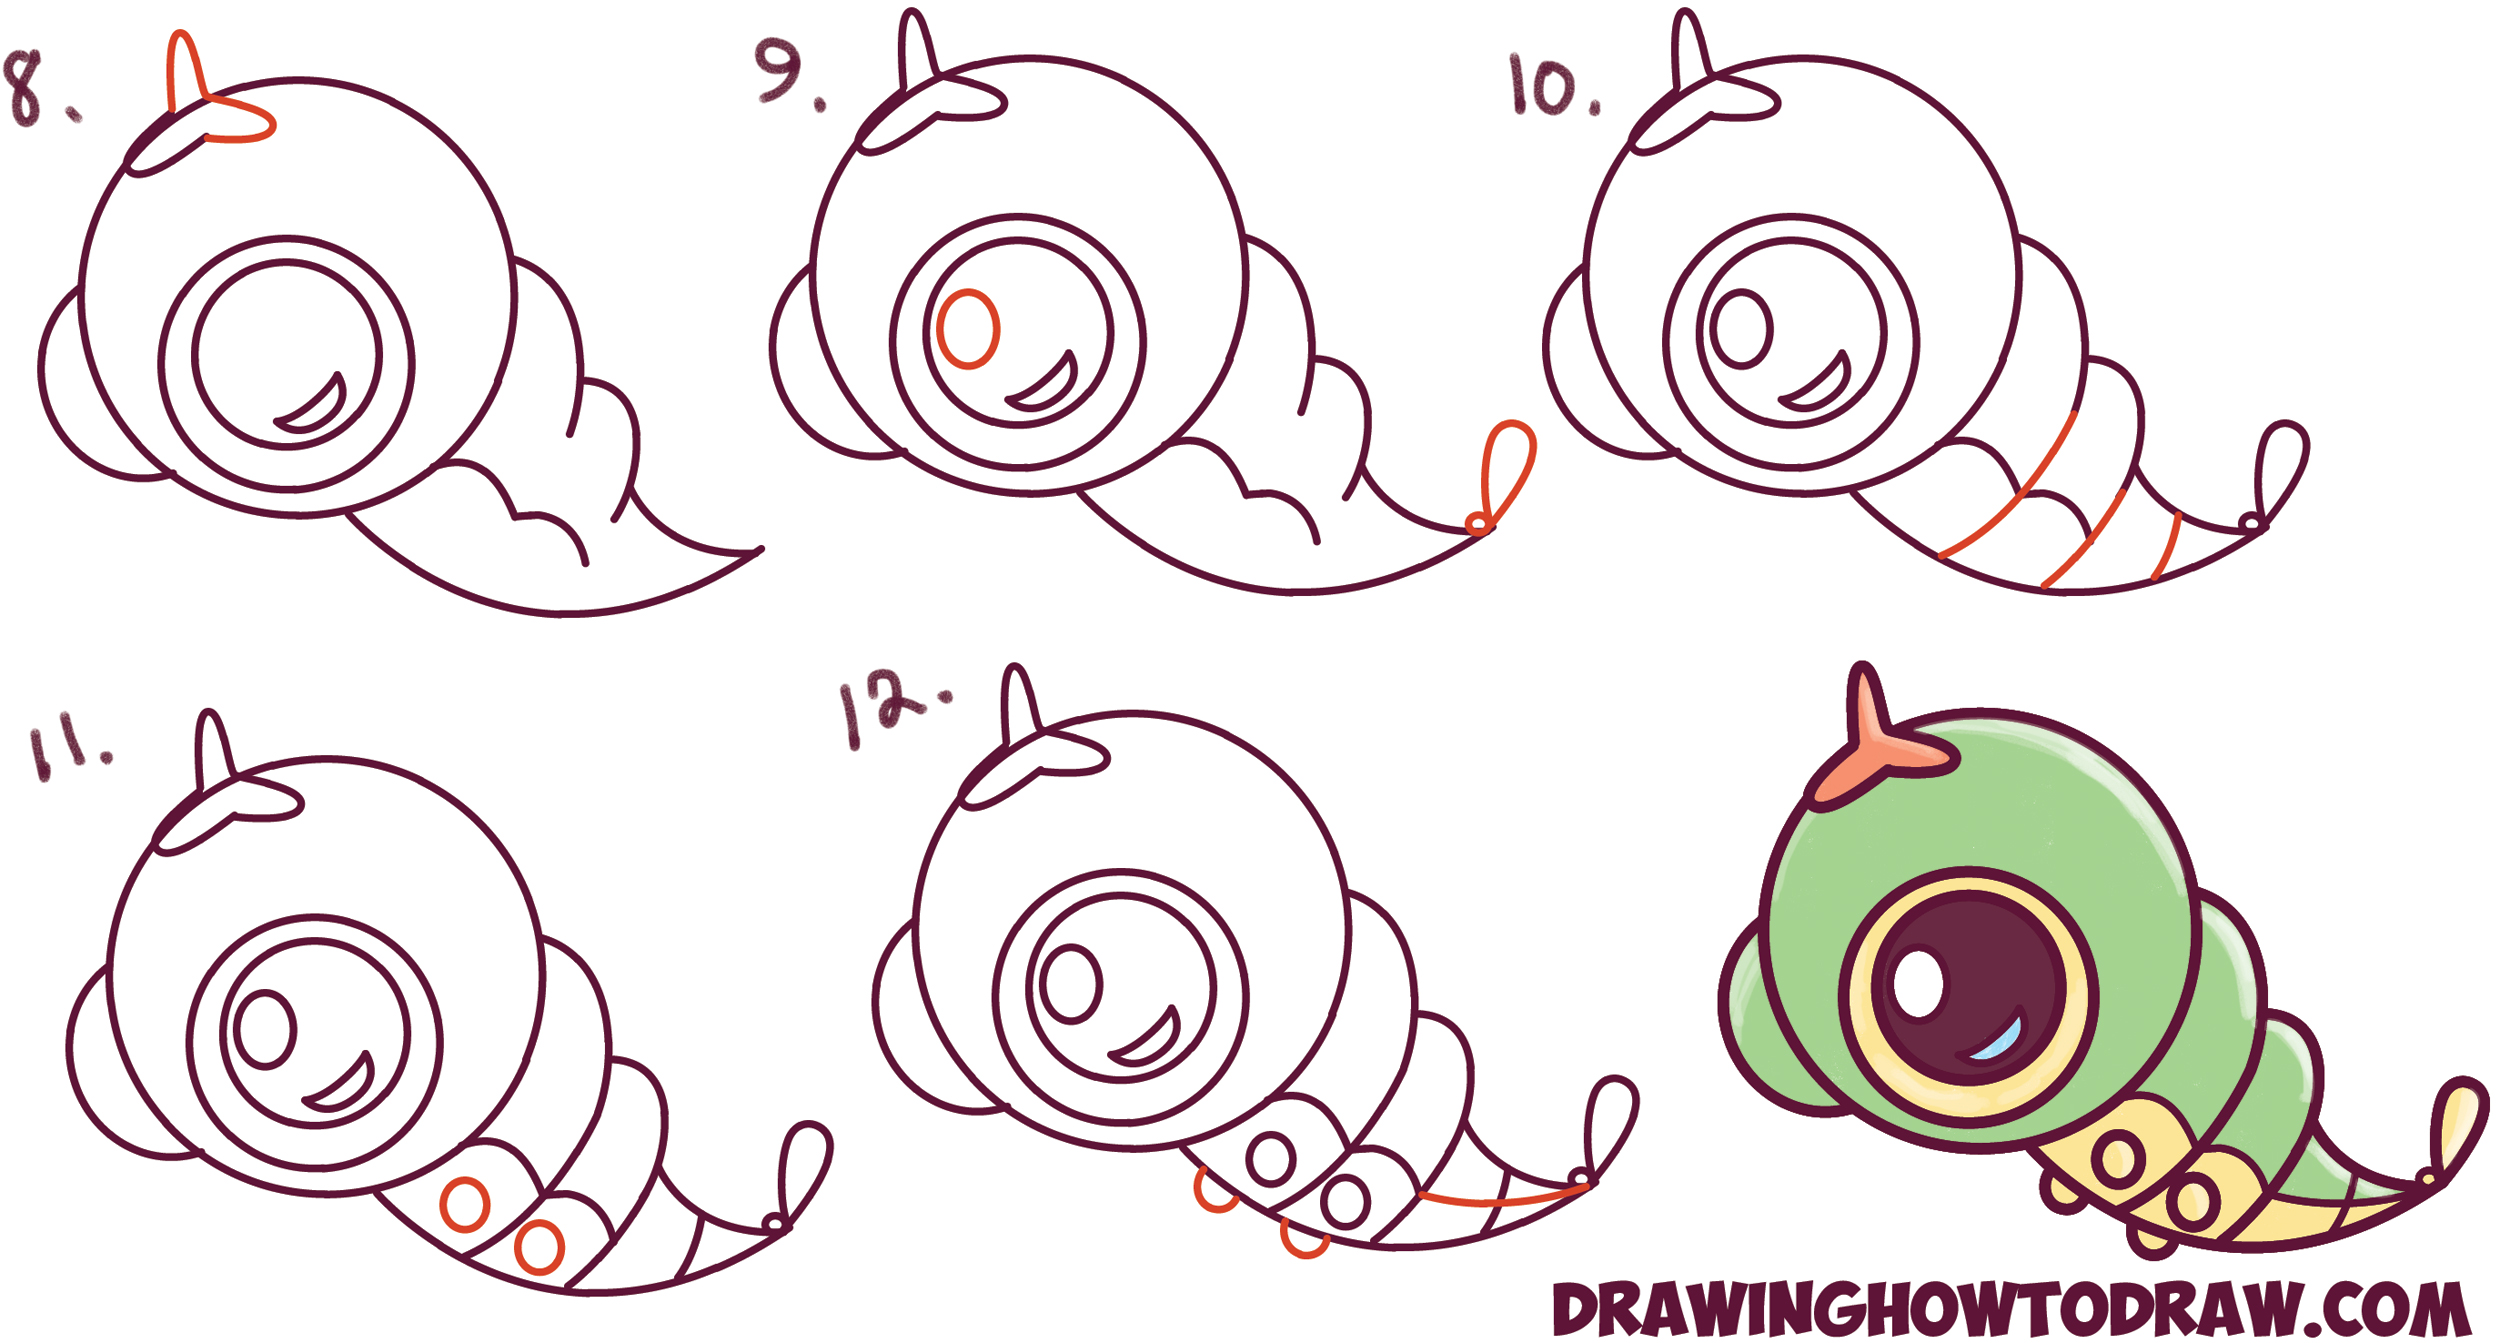 How to Draw Cute / Chibi / Kawaii Caterpie from Pokemon Easy Step by Step Drawing Tutorial for Kids